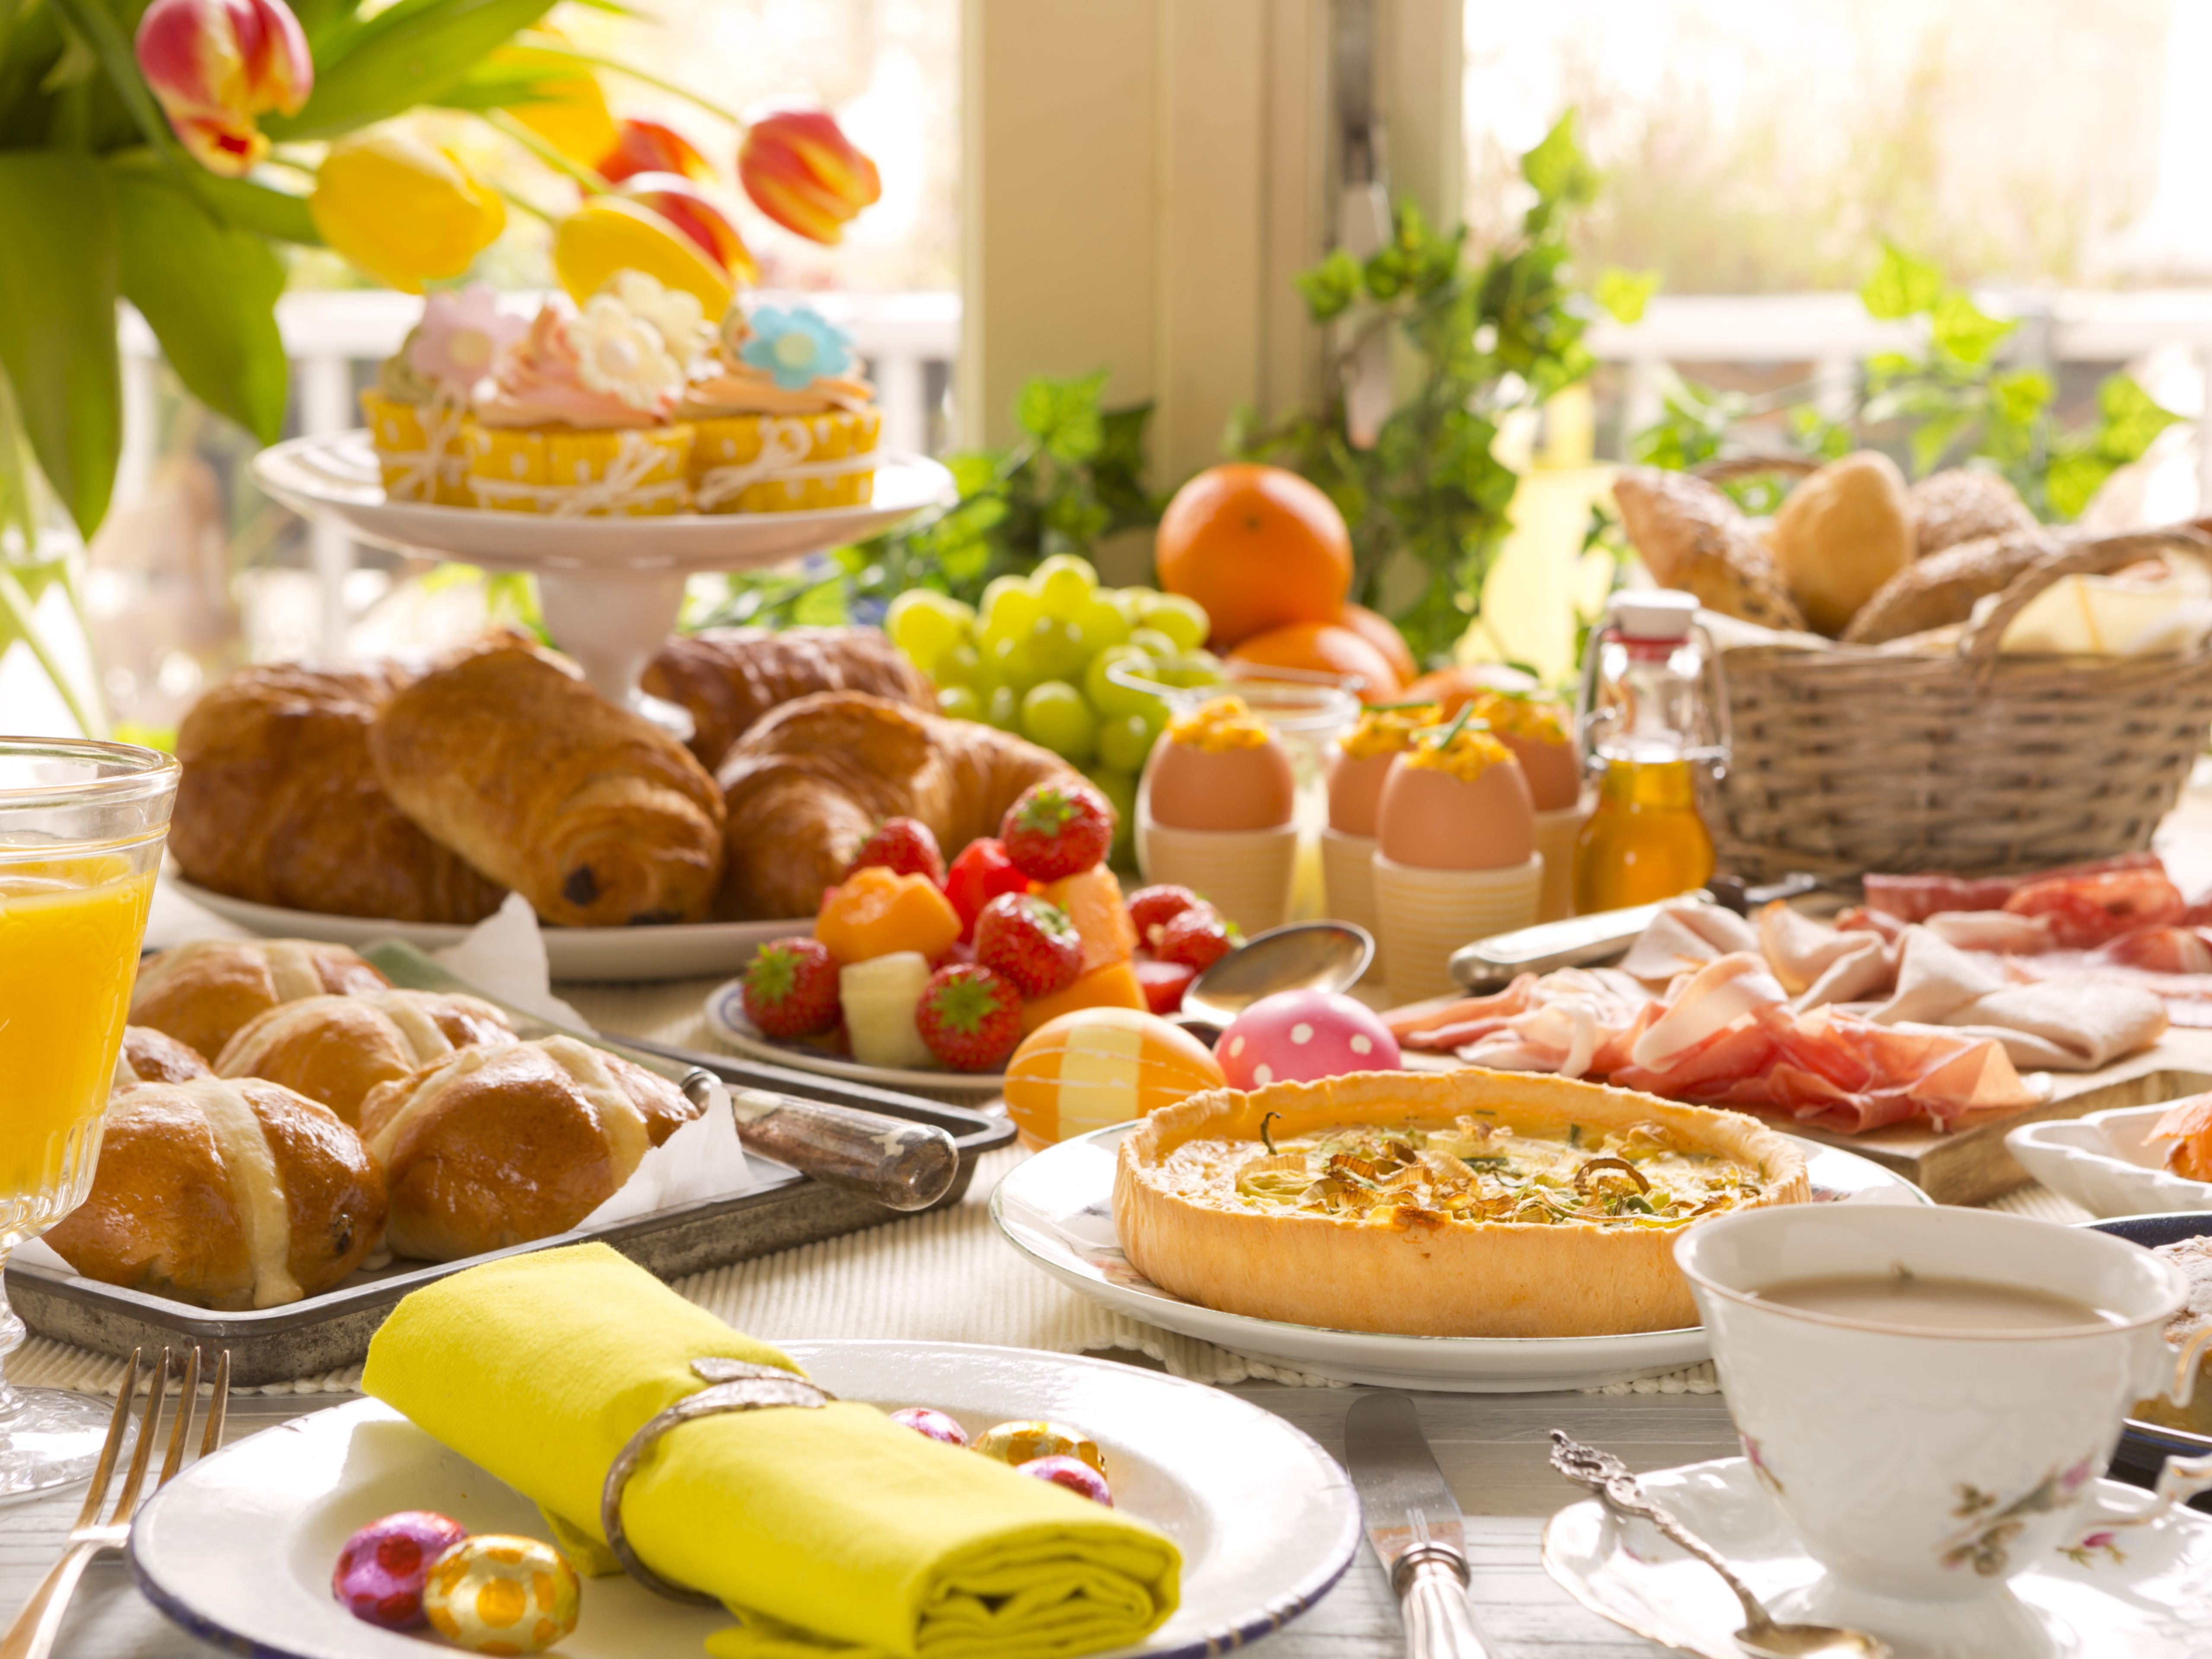 Fabulous Where To Have Easter Brunch In Dallas Fort Worth Texas Interior Design Ideas Tzicisoteloinfo